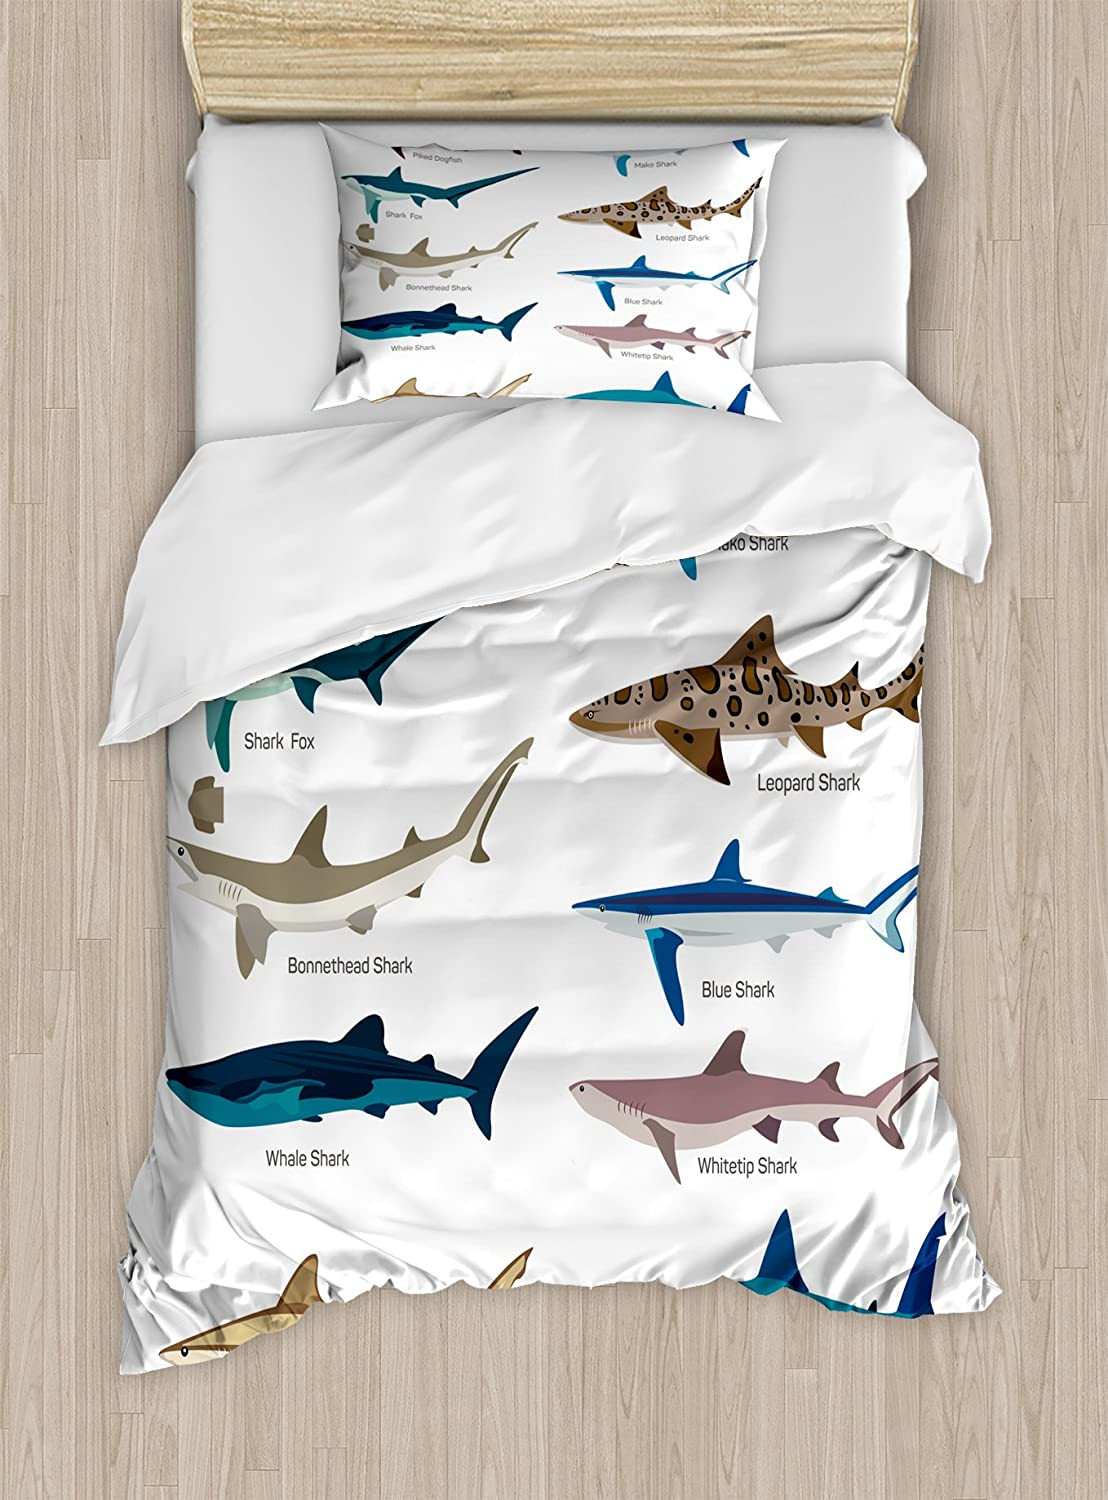 Ambesonne Shark Duvet Cover Set Twin Size, Types of Sharks Pattern Whaler Piked Dogfish Whlae Shark Maritime Design Nautical, Decorative 2 Piece Bedding Set with 1 Pillow Sham, Blue Tan